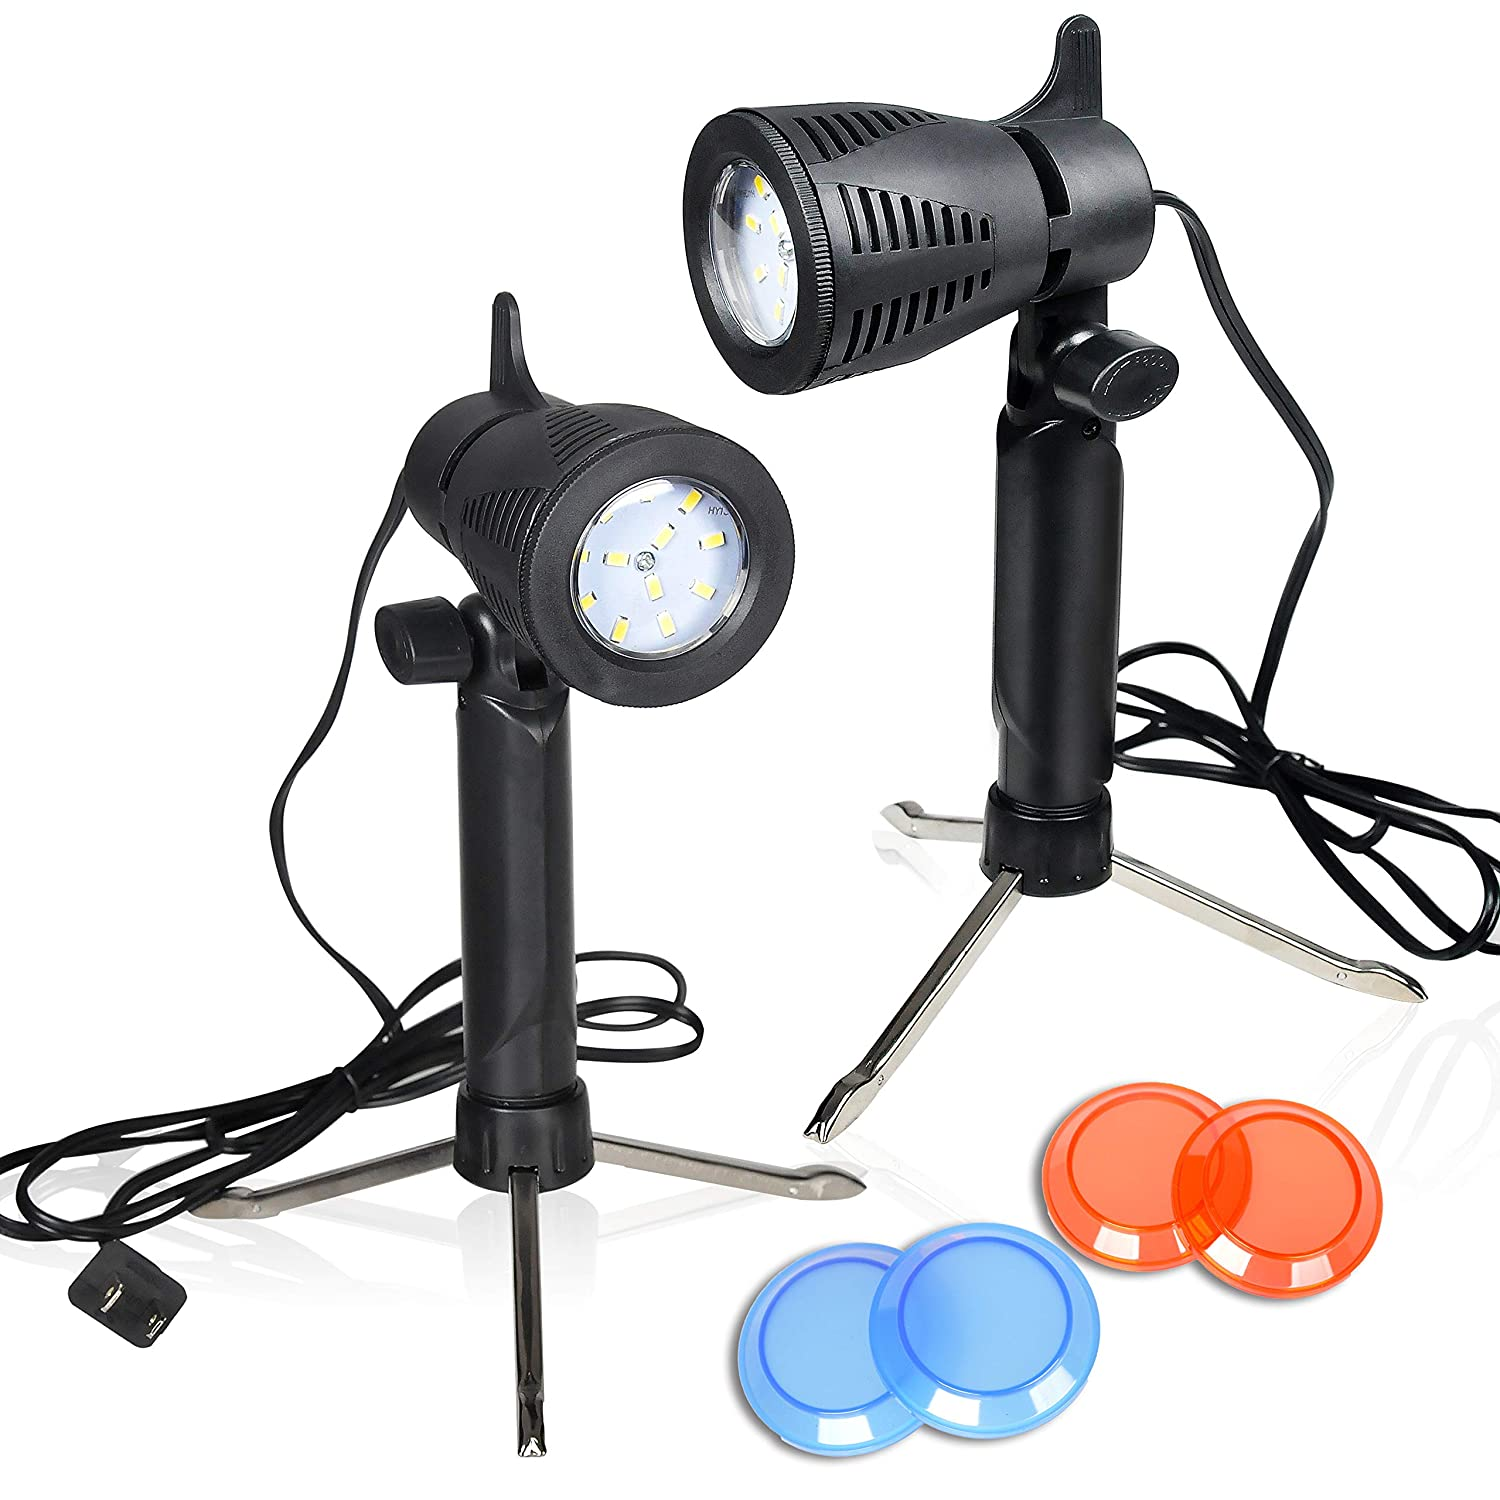 Emart Photography LED Continuous Light Lamp 5500K Portable Camera Photo Lighting for Table Top Studio - 2 Sets Emartinc